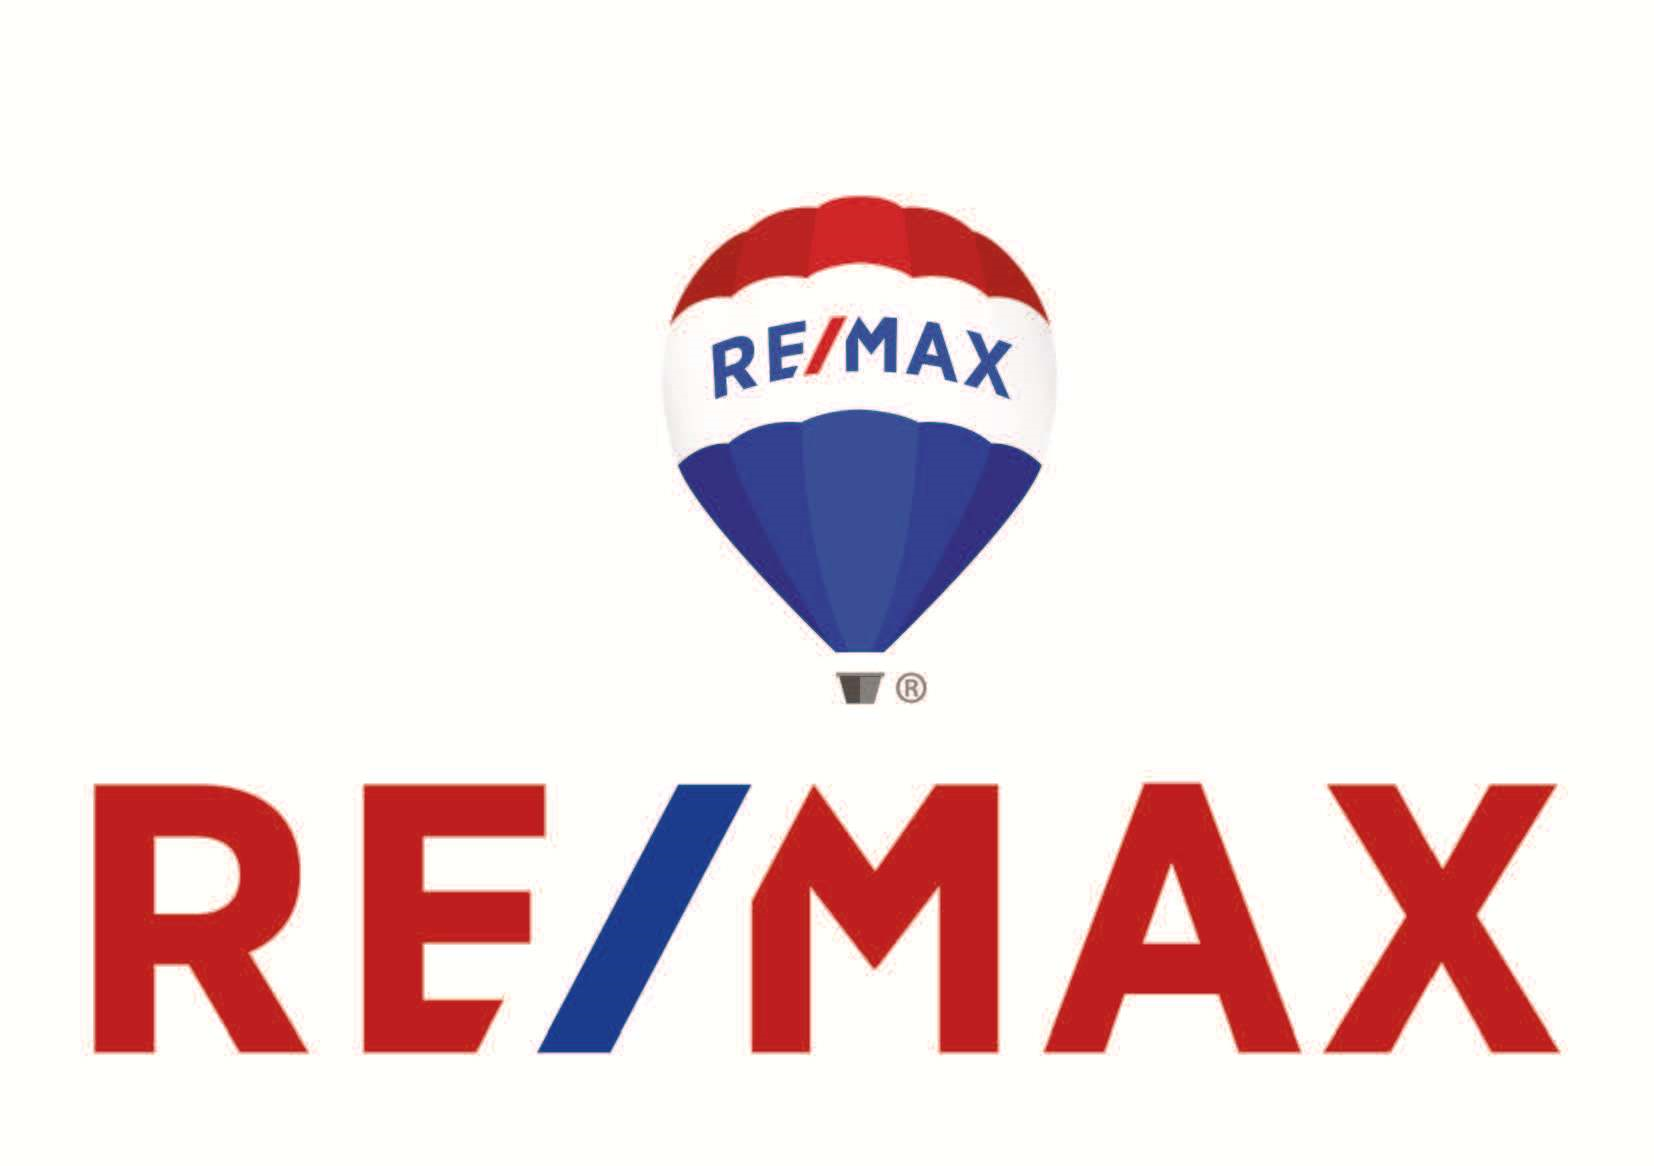 A.E.B. Immobilien NH GmbH & Co. KG RE/MAX in Buchholz